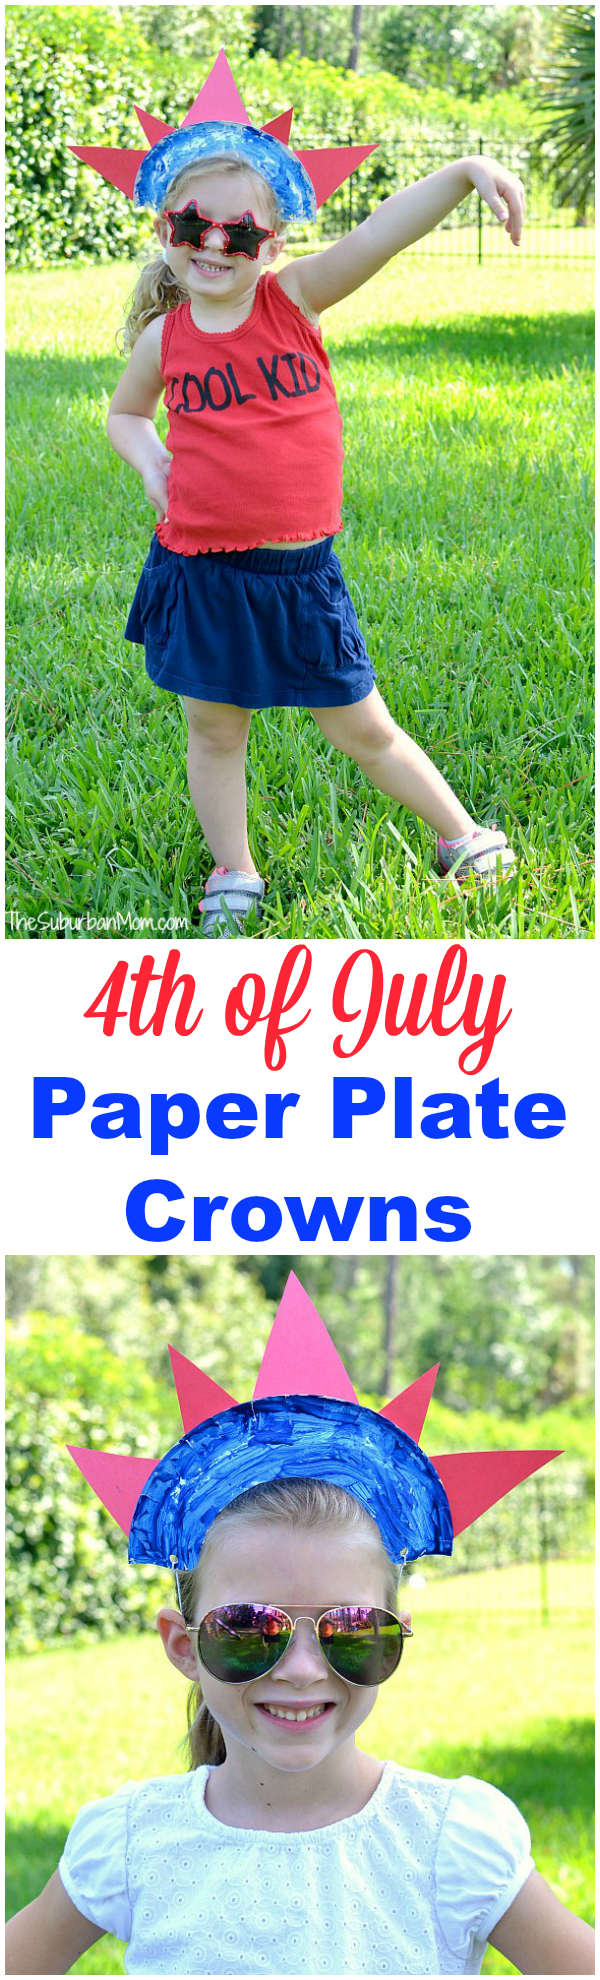 sc 1 st  The Suburban Mom & 4th of July Paper Plate Crown